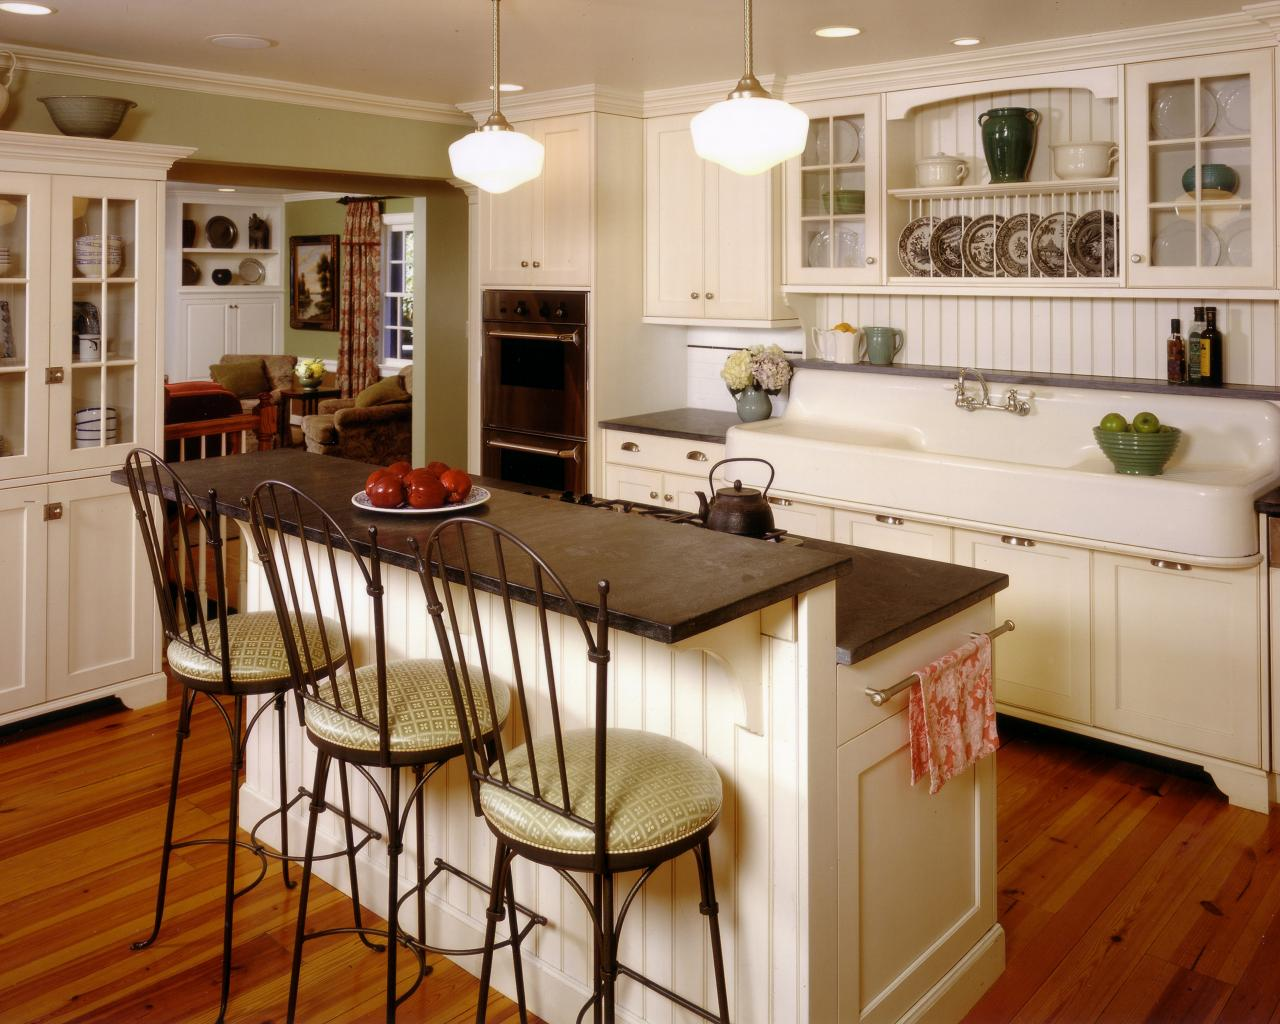 Majestic country kitchen cabinets 12 cozy cottage kitchens rfzzbah